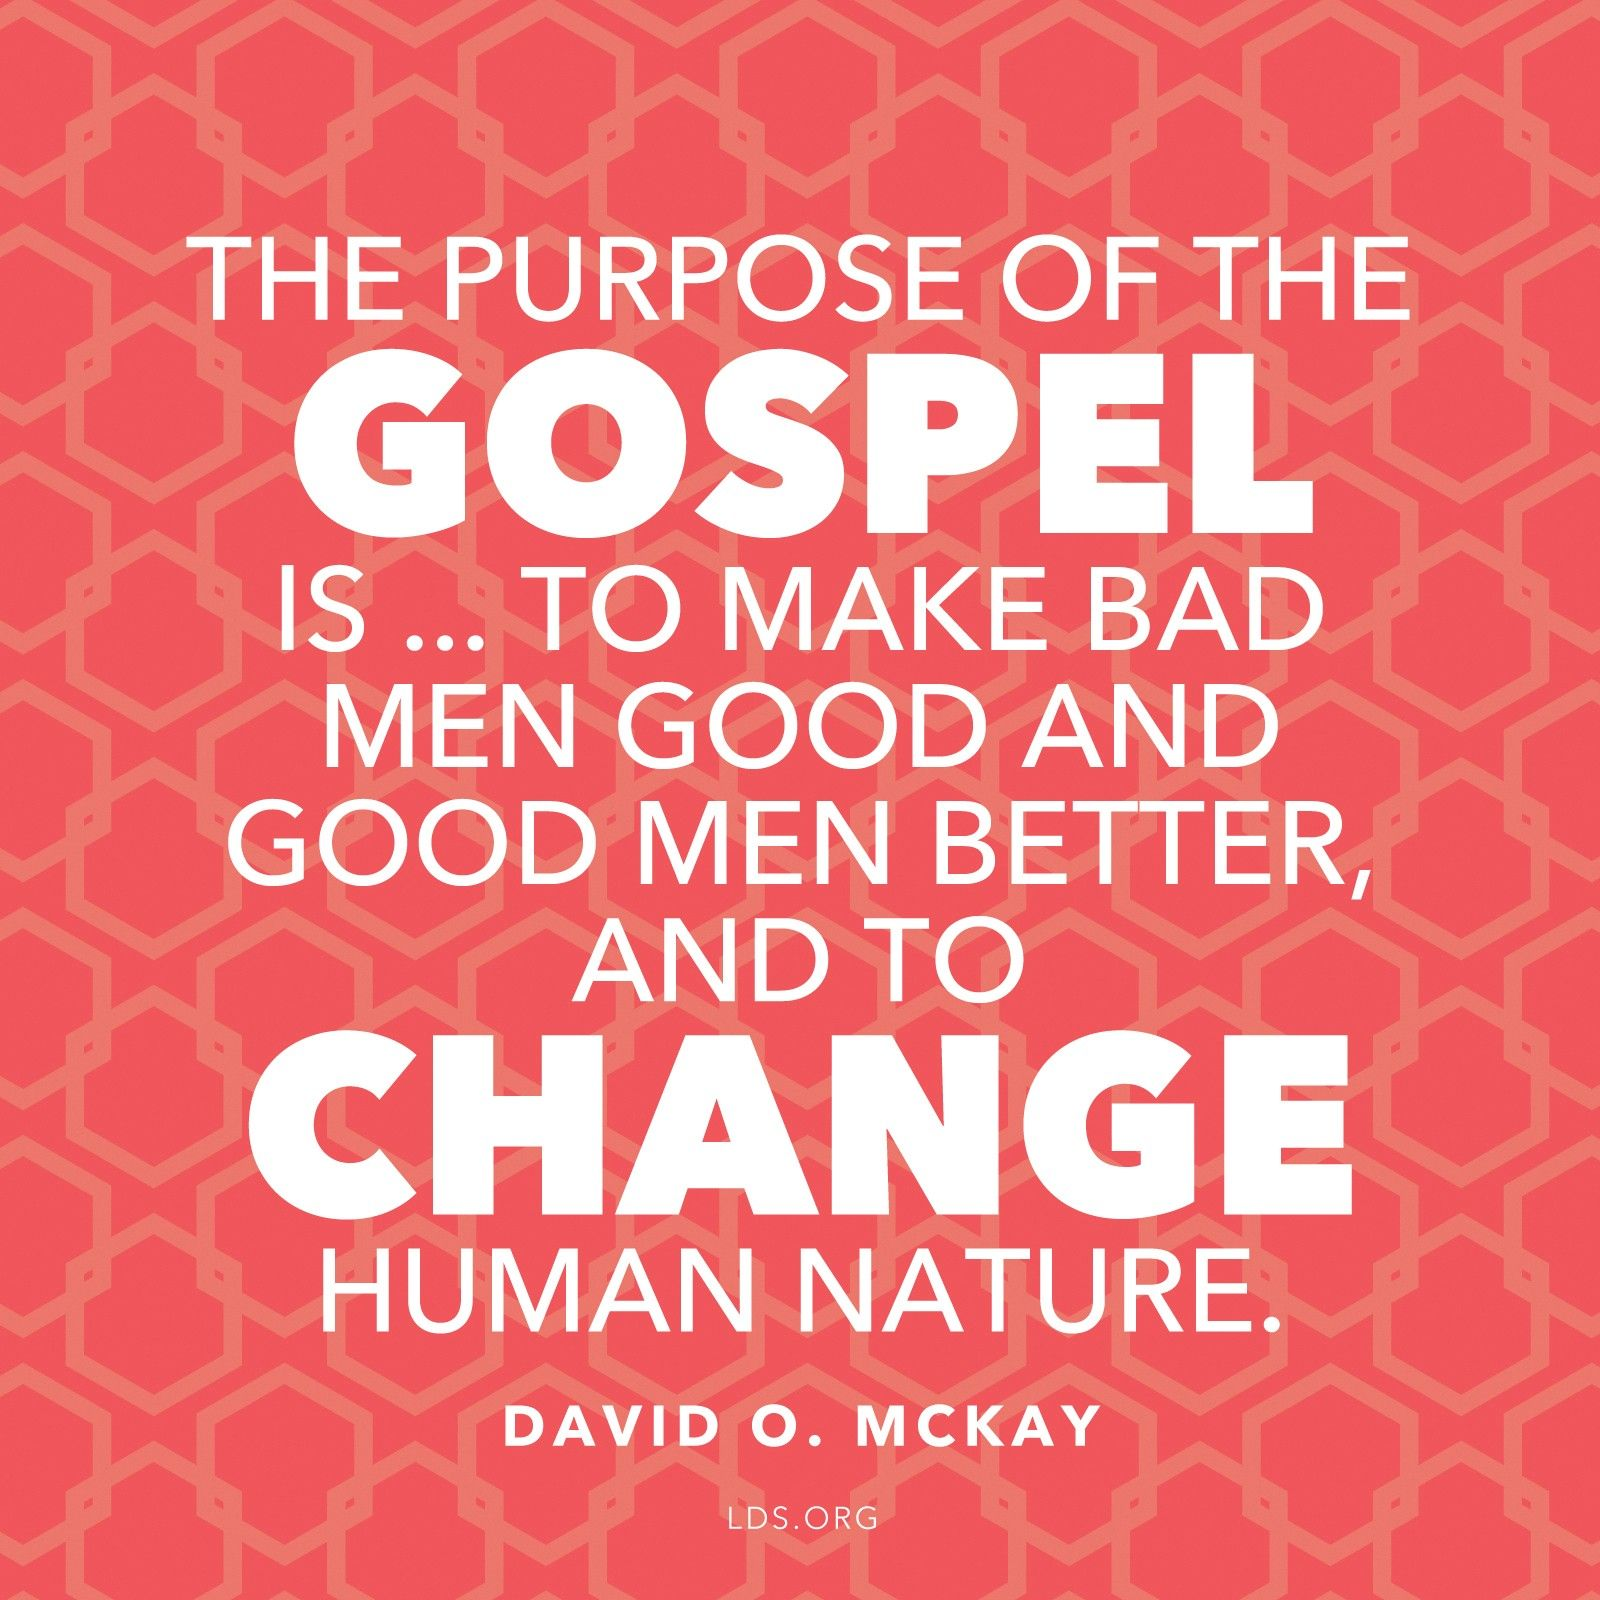 """""""The purpose of the gospel is … to make bad men good and good men better, and to change human nature.""""—President David O. McKay, in the film Every Member a Missionary, as quoted by Elder Franklin D. Richards in Conference Report, Oct. 1965"""